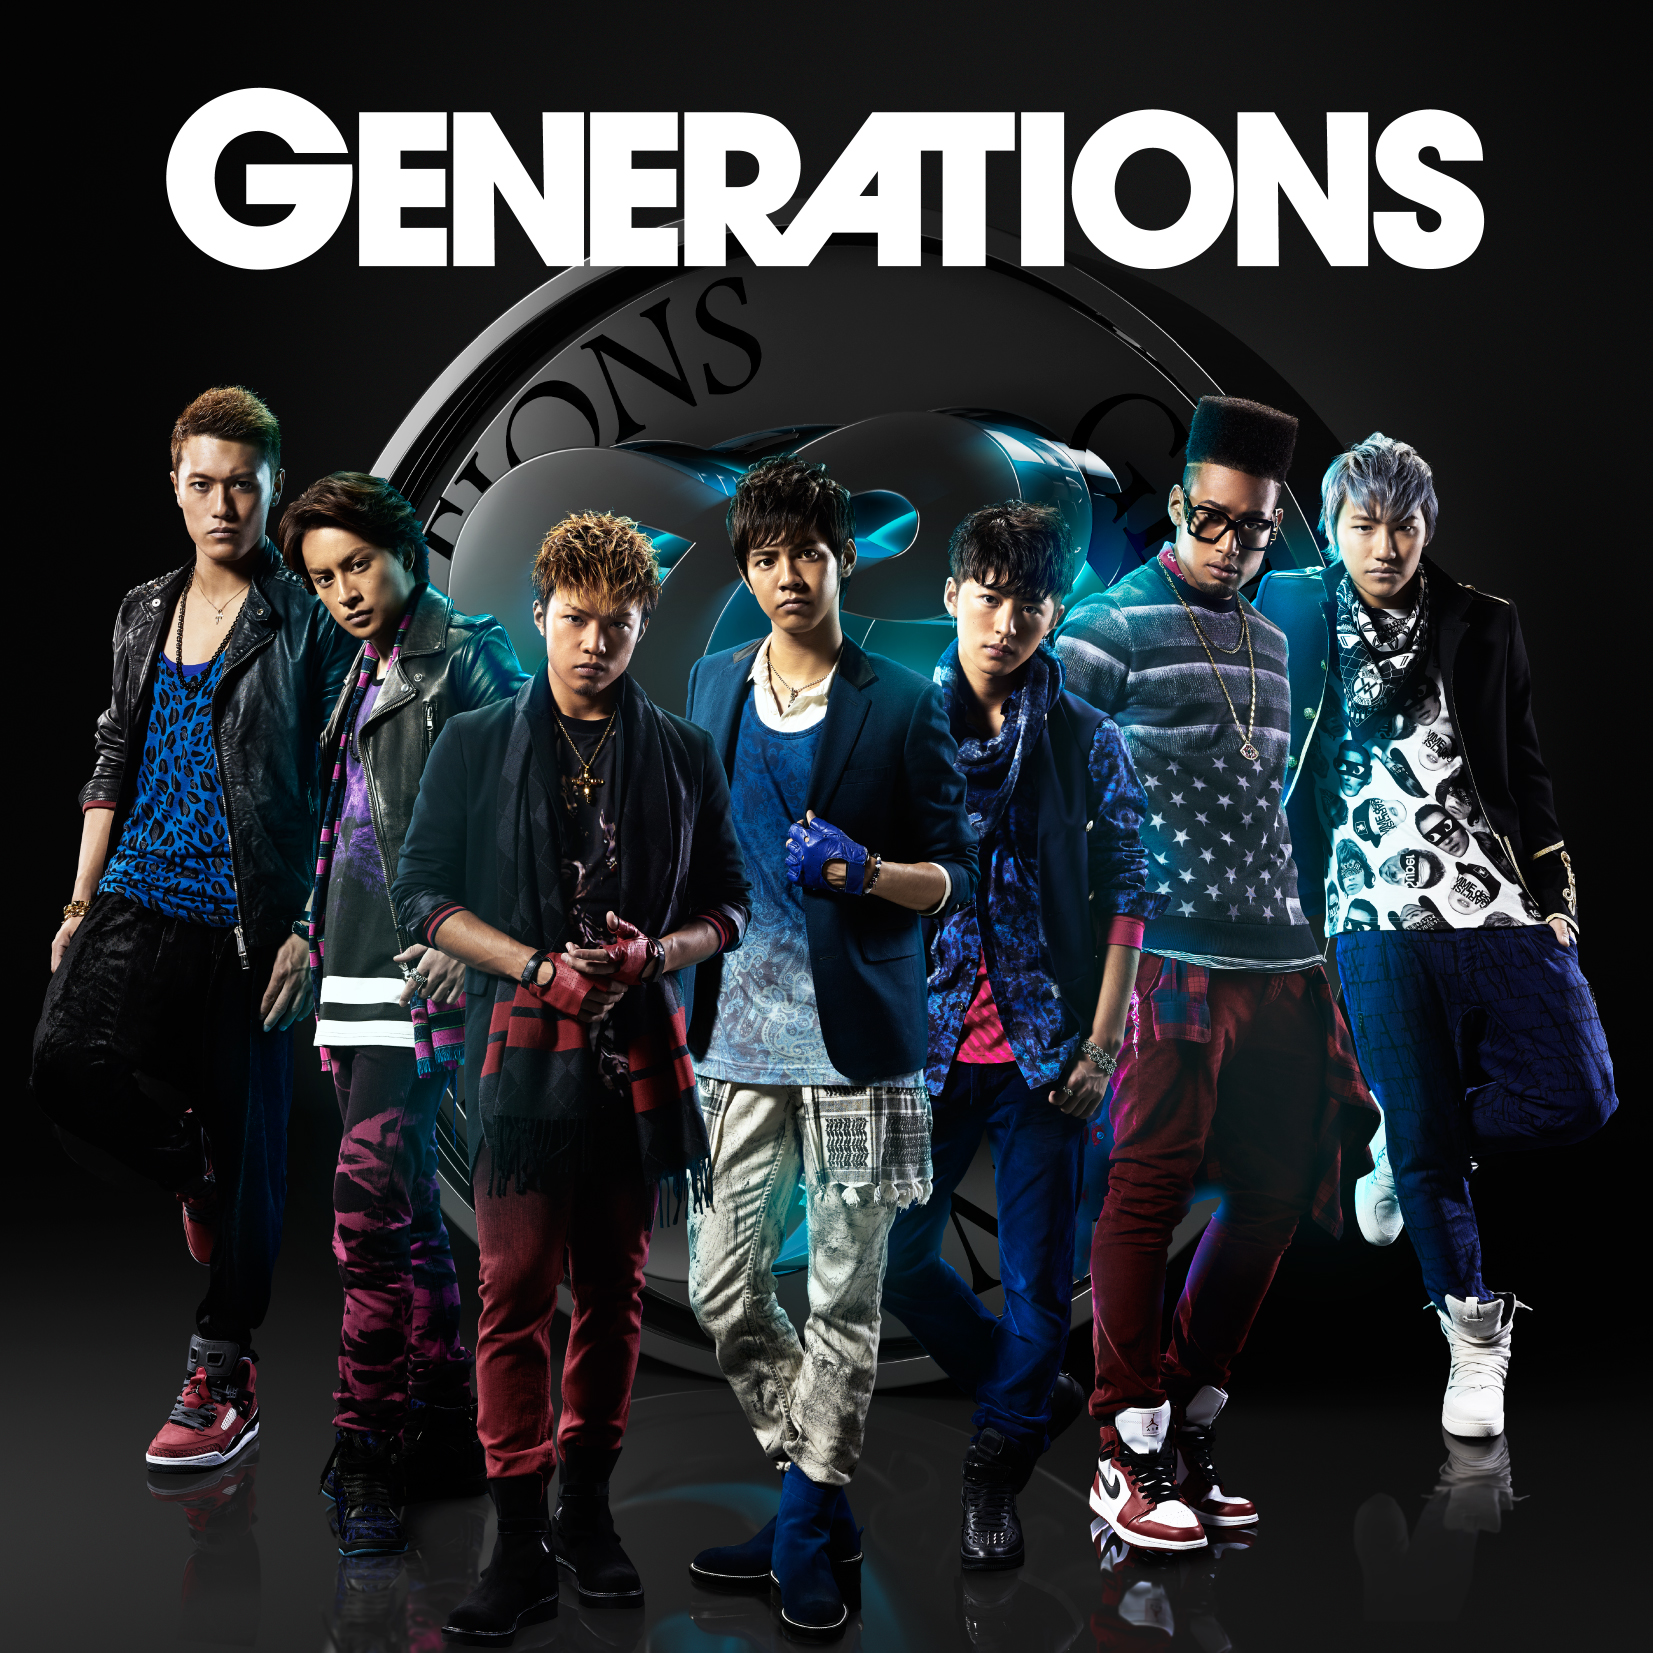 GENERATIONS from EXILE TRIBE「GENERATIONS」